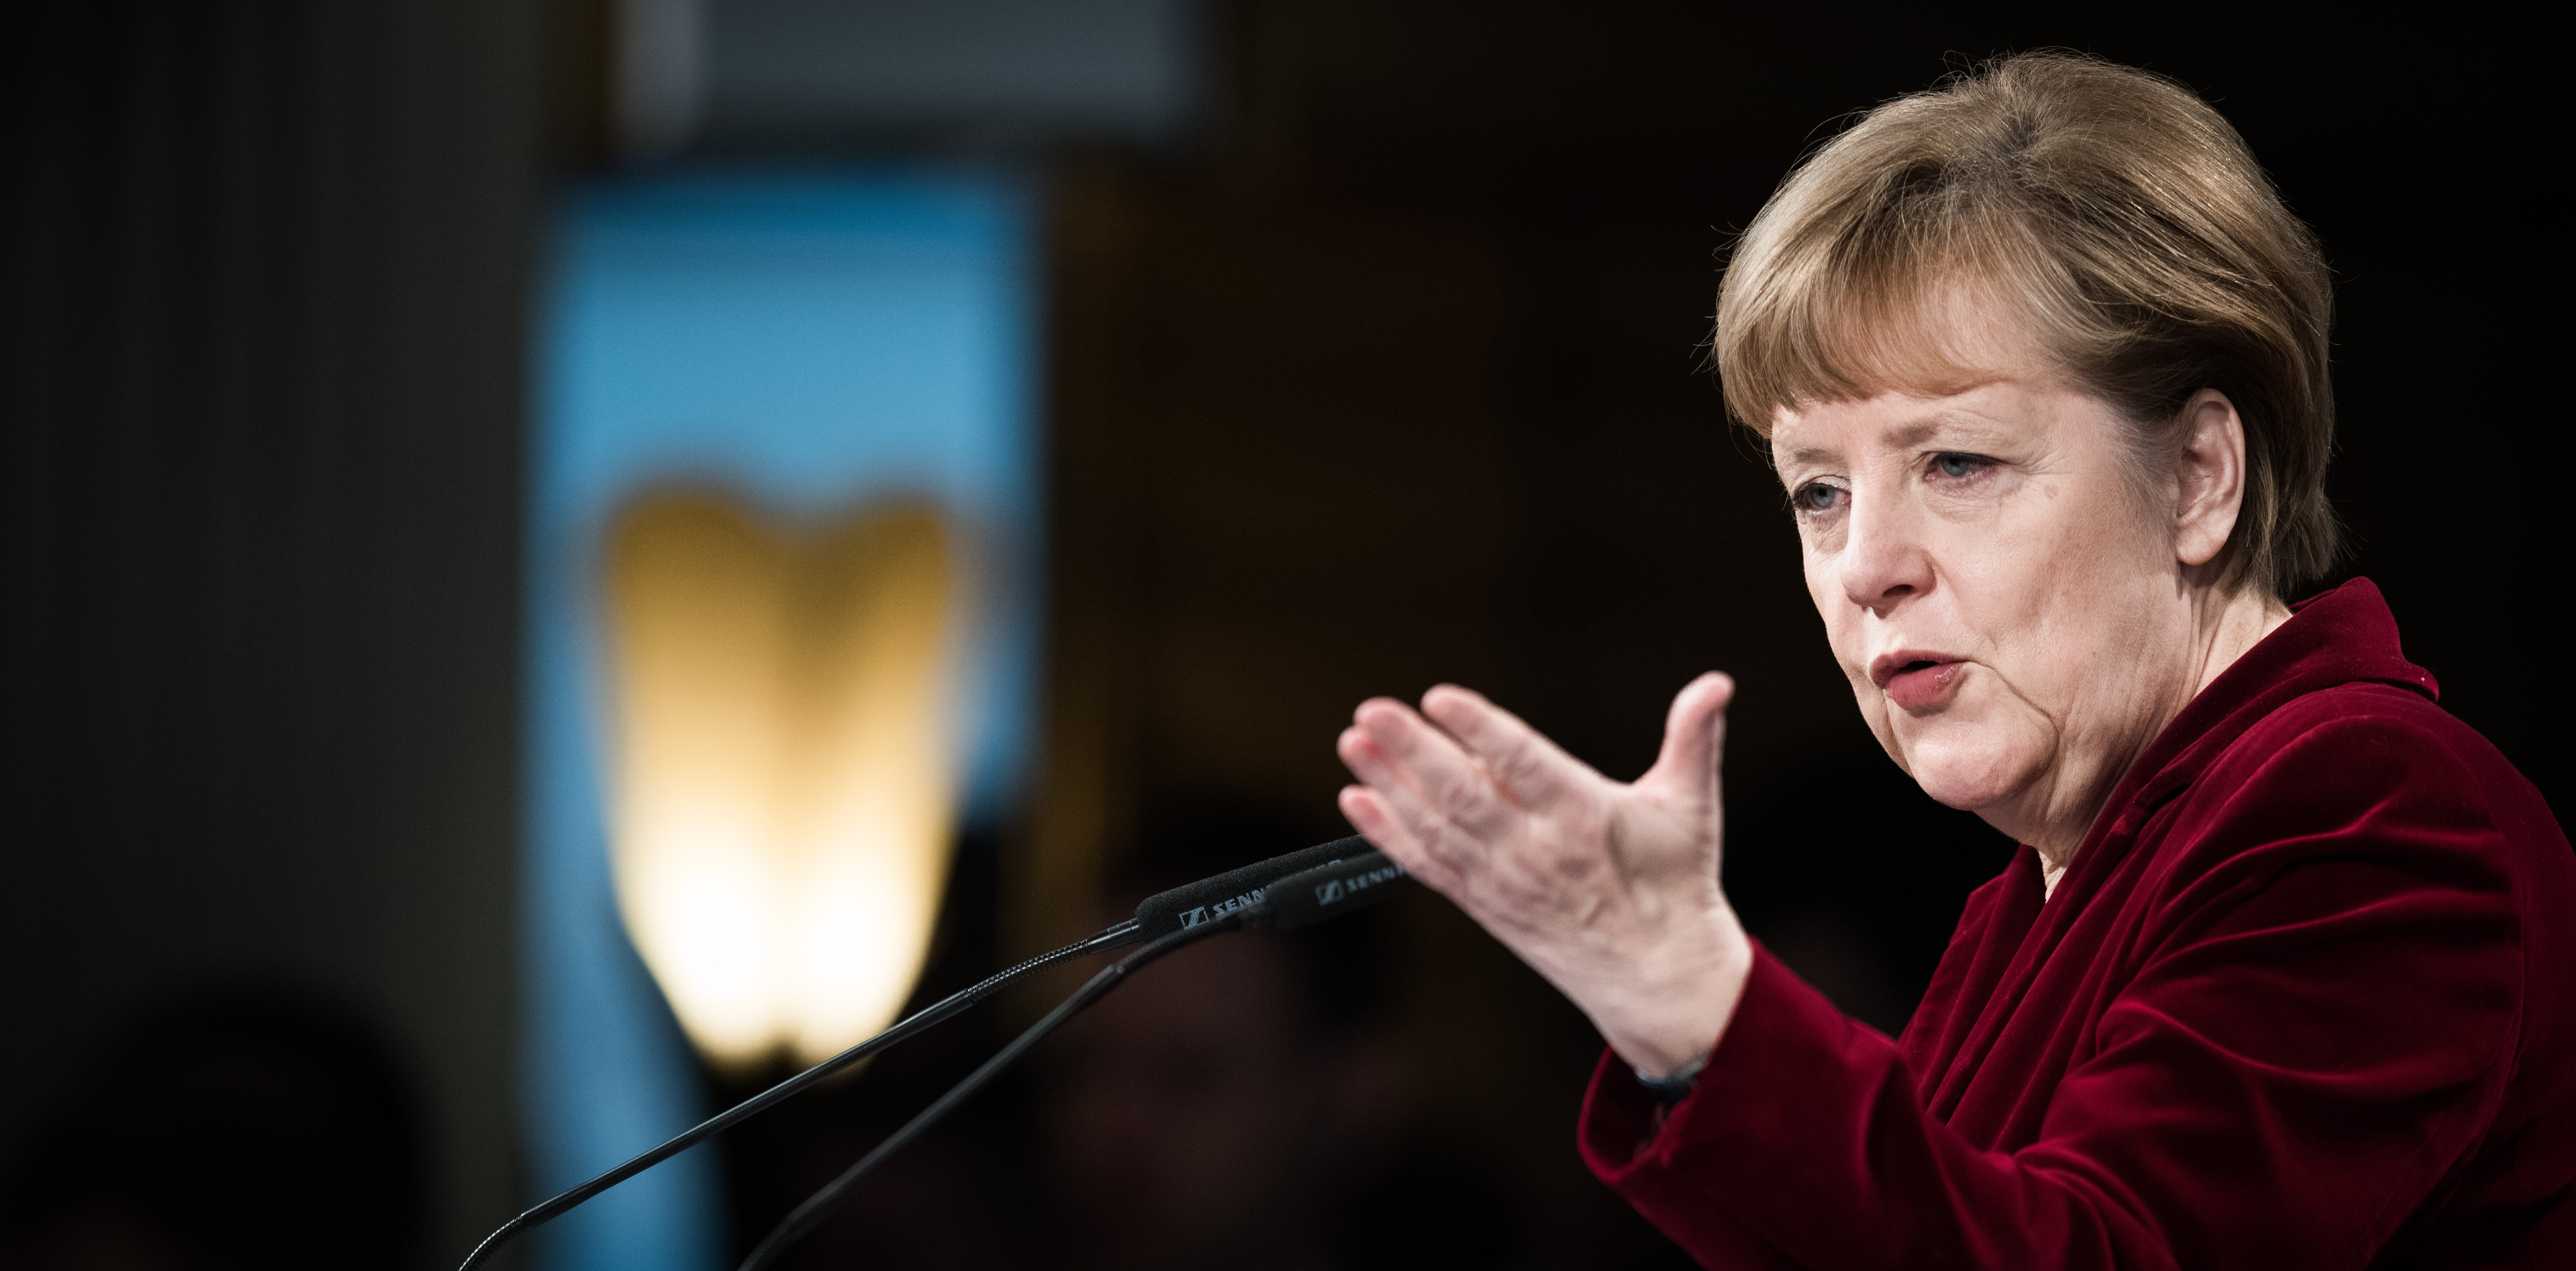 merkel calls on public to fight anti-semitism